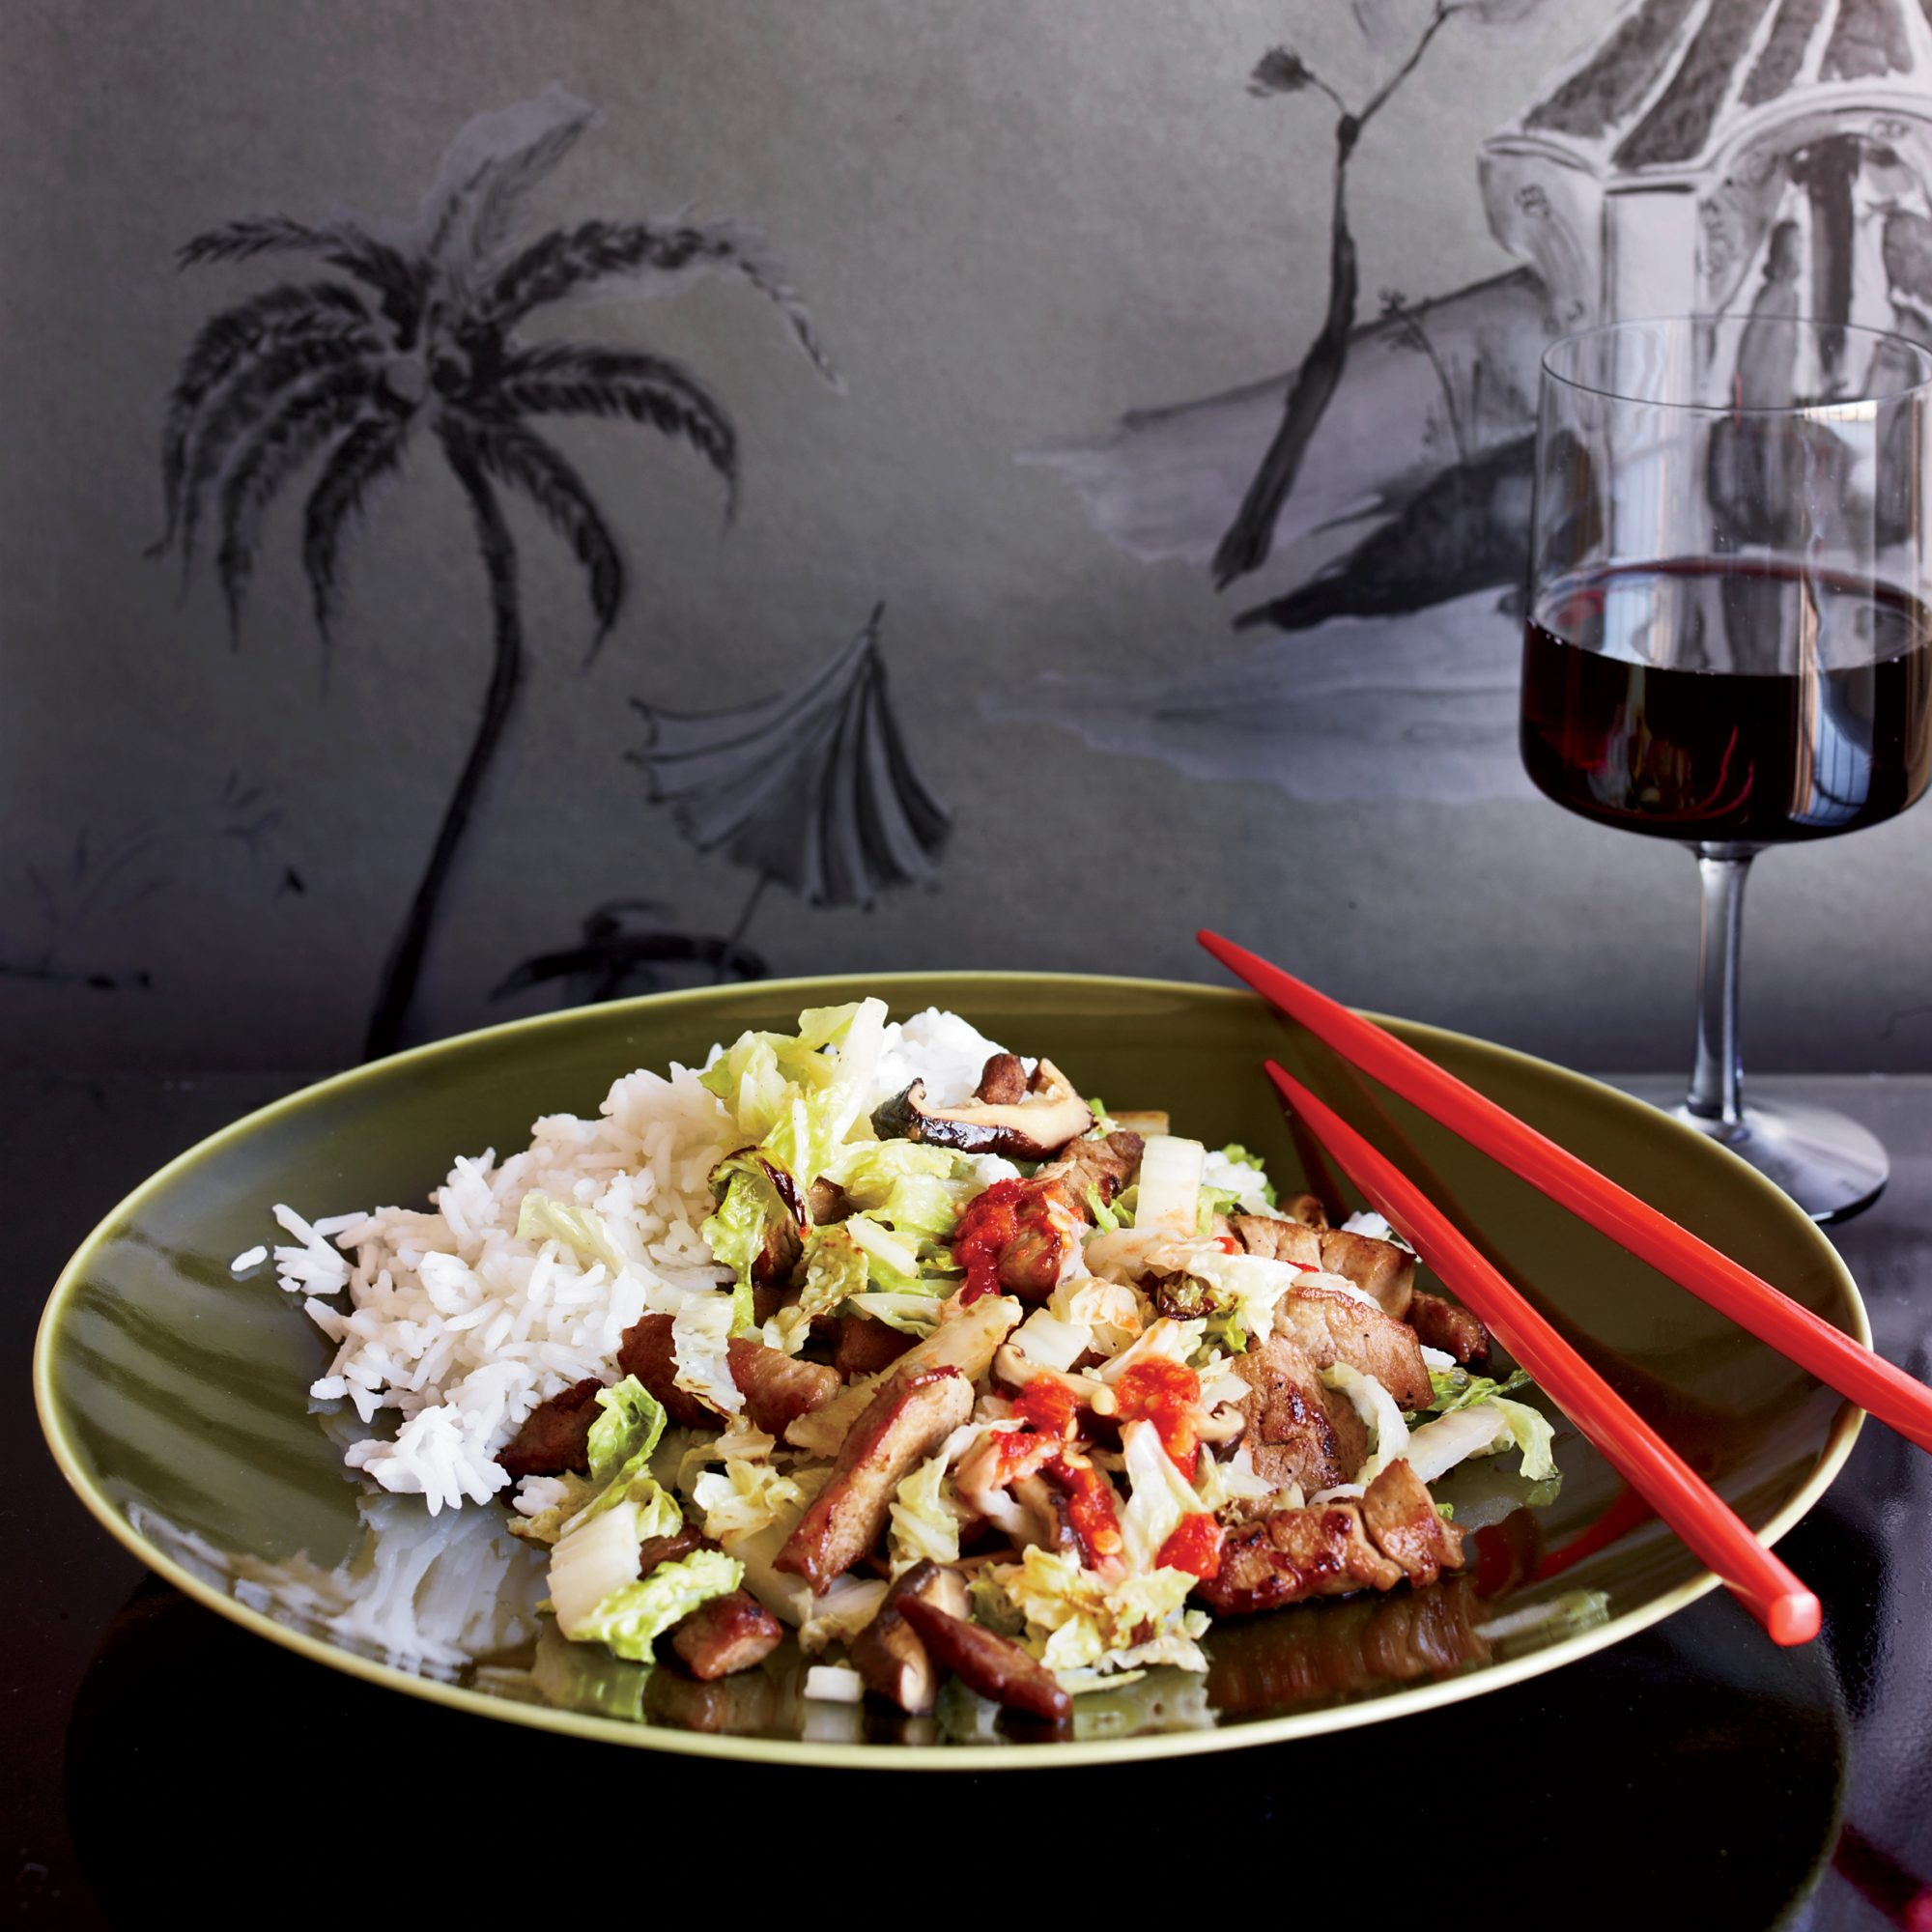 images-sys-201201-r-shanghai-stir-fried-pork-with-cabbage.jpg